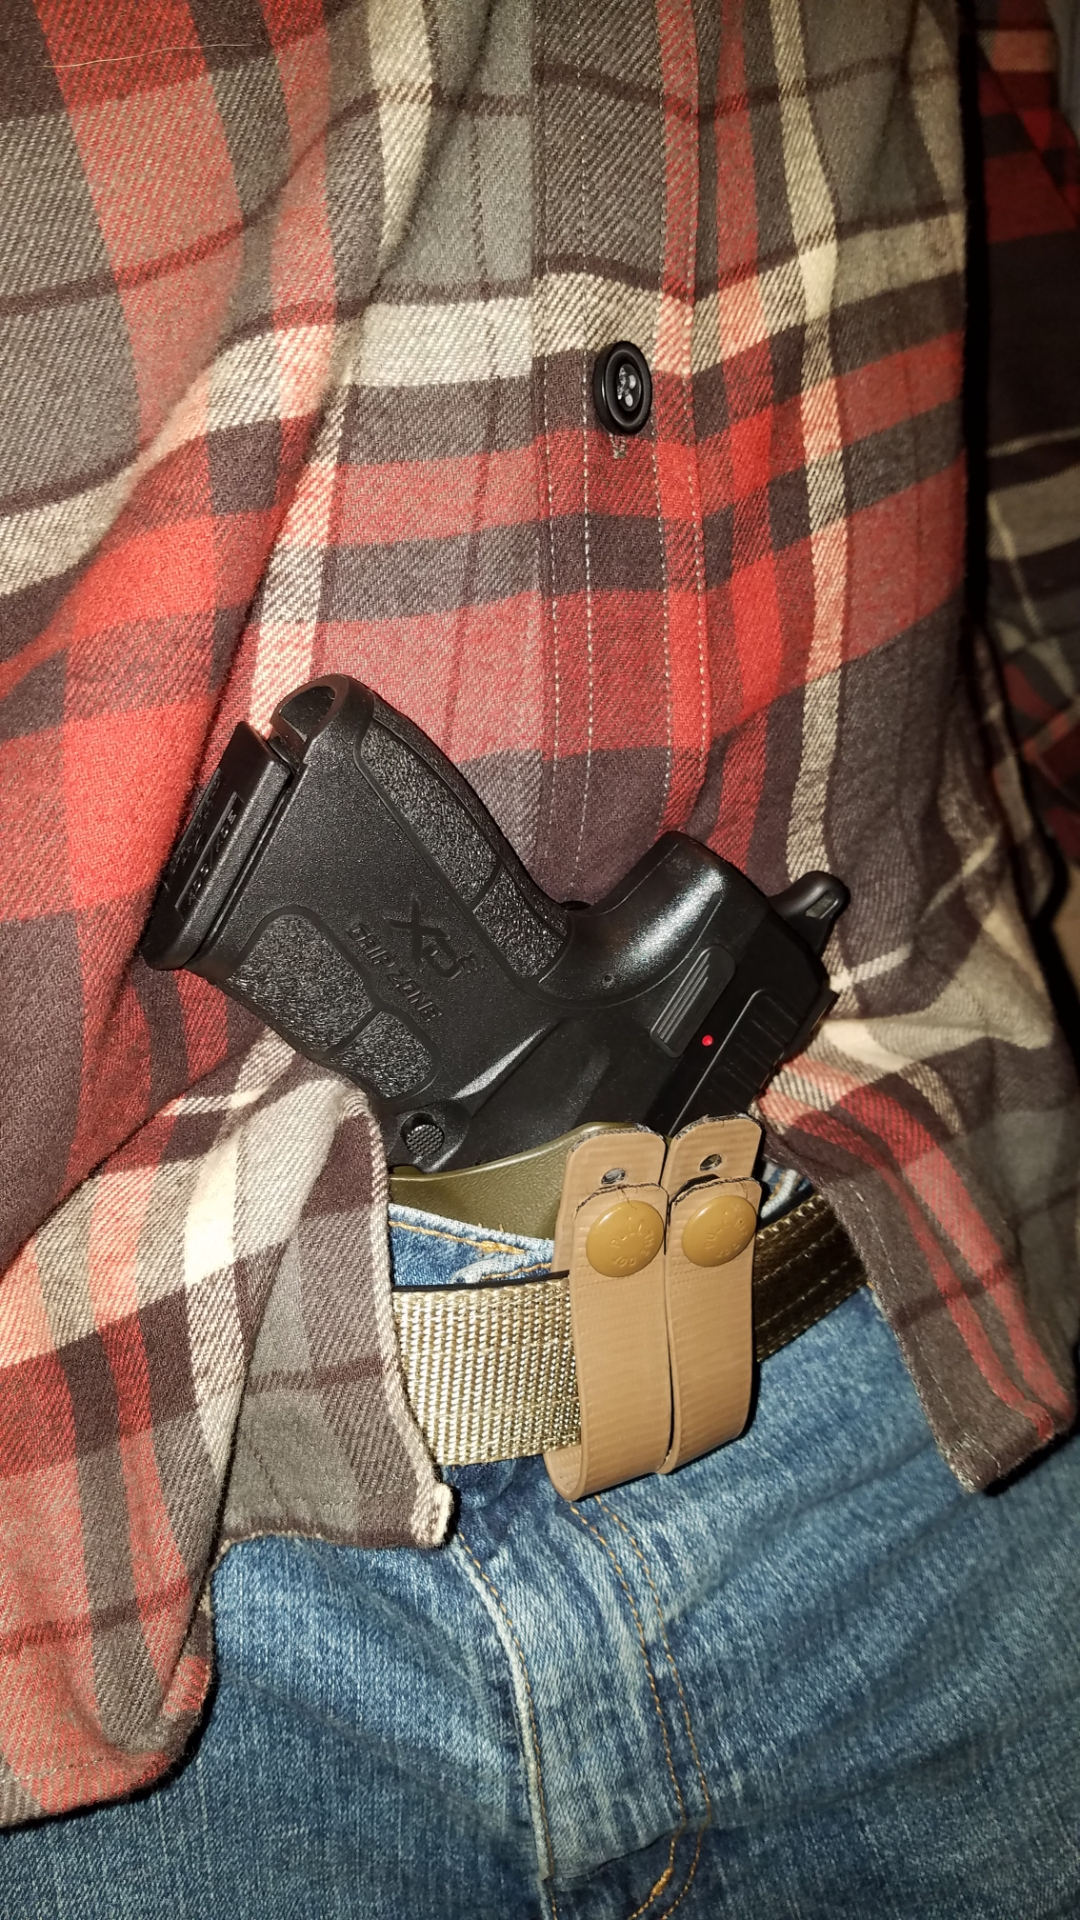 I'm No Longer Able to Effectively Carry IWB-screenshot_20200214-100218_gallery_1581697776415.jpg